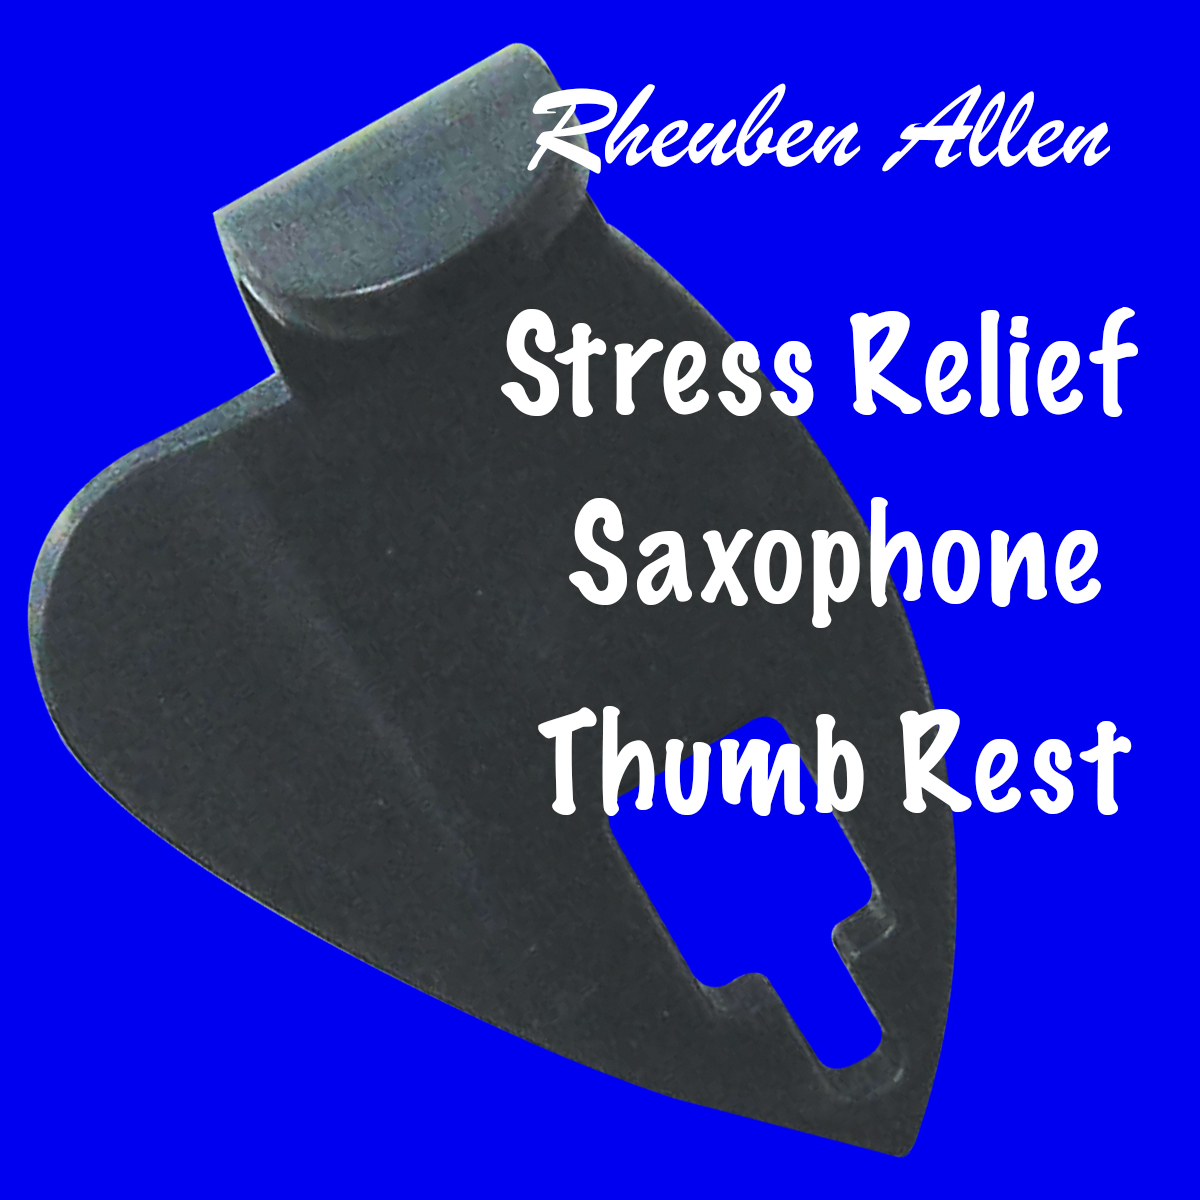 Rheuben Allen Strtess relief Saxopohone Thumb Rest